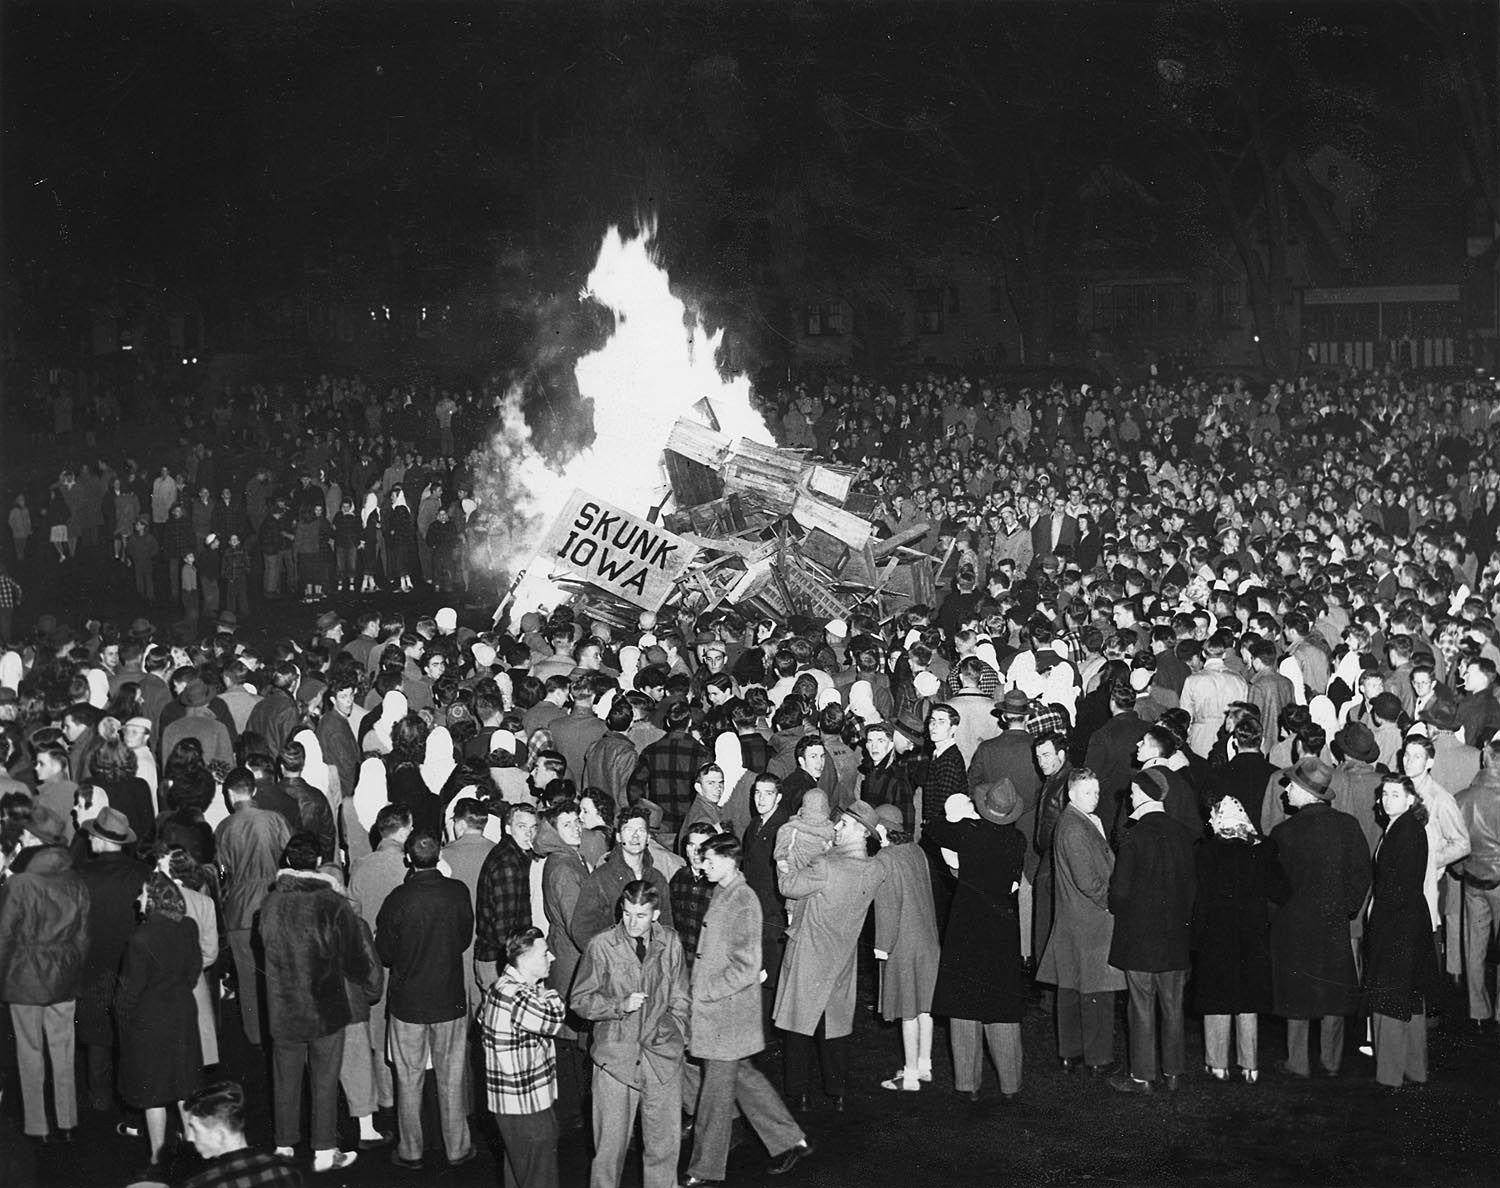 A Homecoming bonfire before the University of